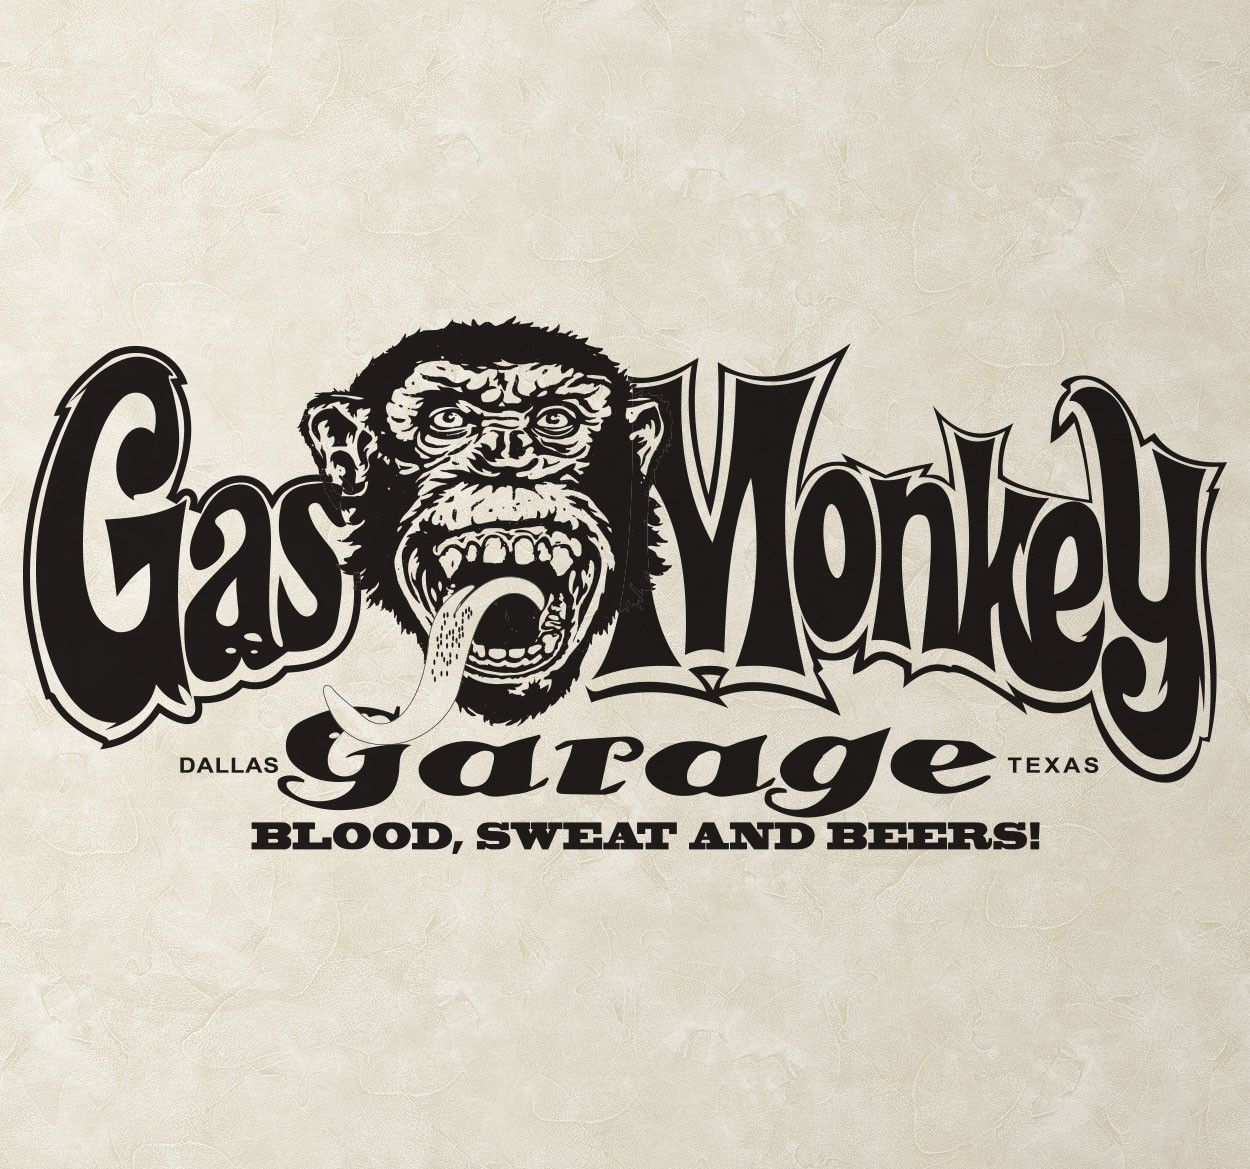 Are You A Gas Monkey Like The Guys From The 'Gas Monkey